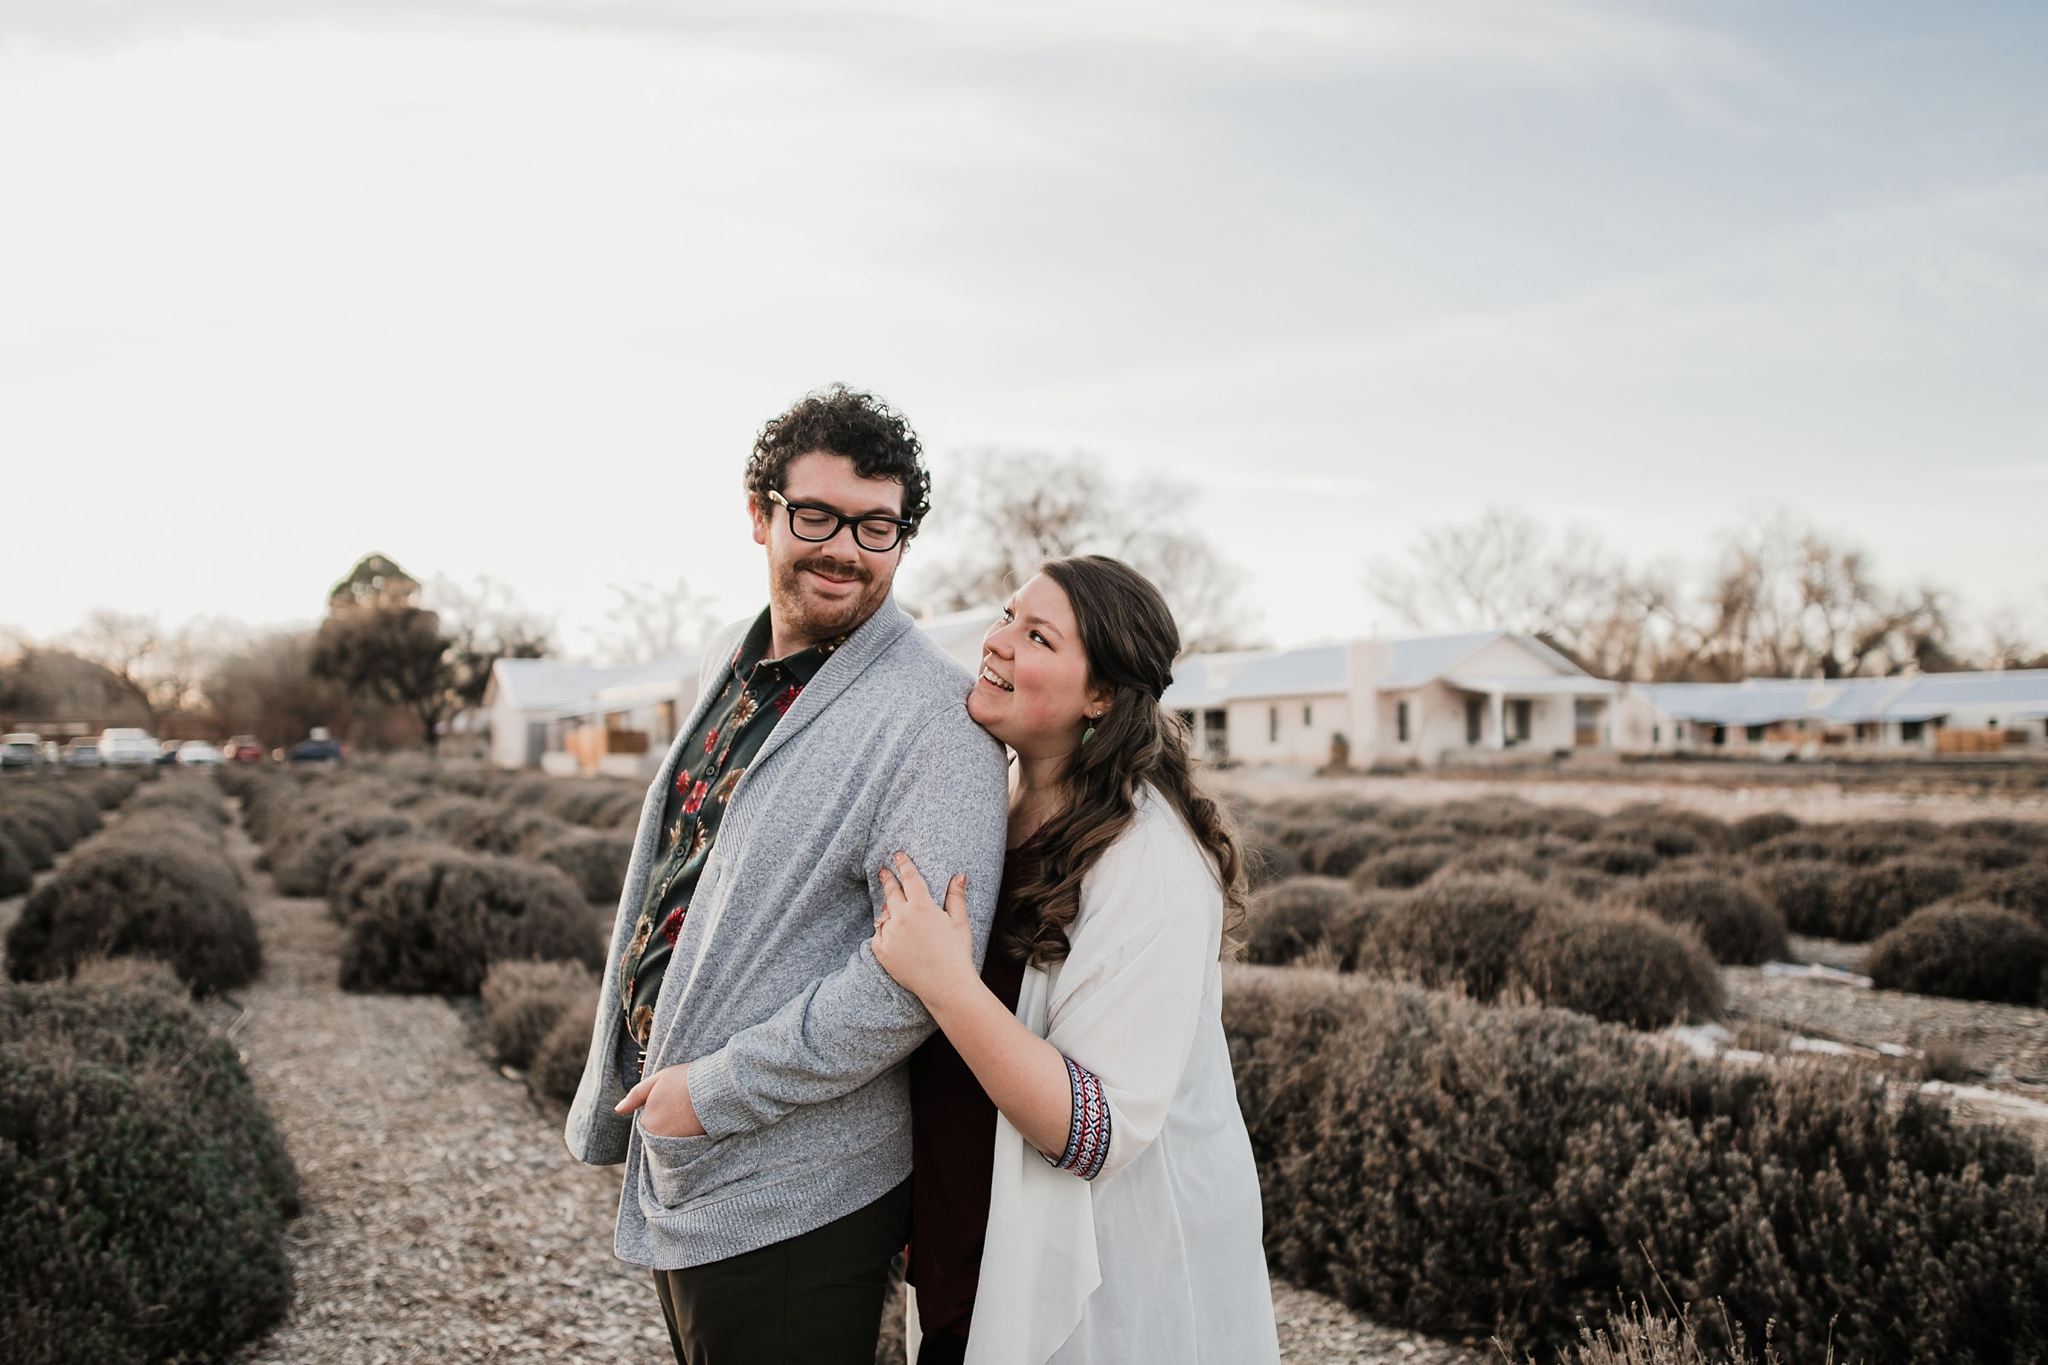 Alicia+lucia+photography+-+albuquerque+wedding+photographer+-+santa+fe+wedding+photography+-+new+mexico+wedding+photographer+-+new+mexico+engagement+-+los+poblanos+engagement+-+spring+engagement_0006.jpg